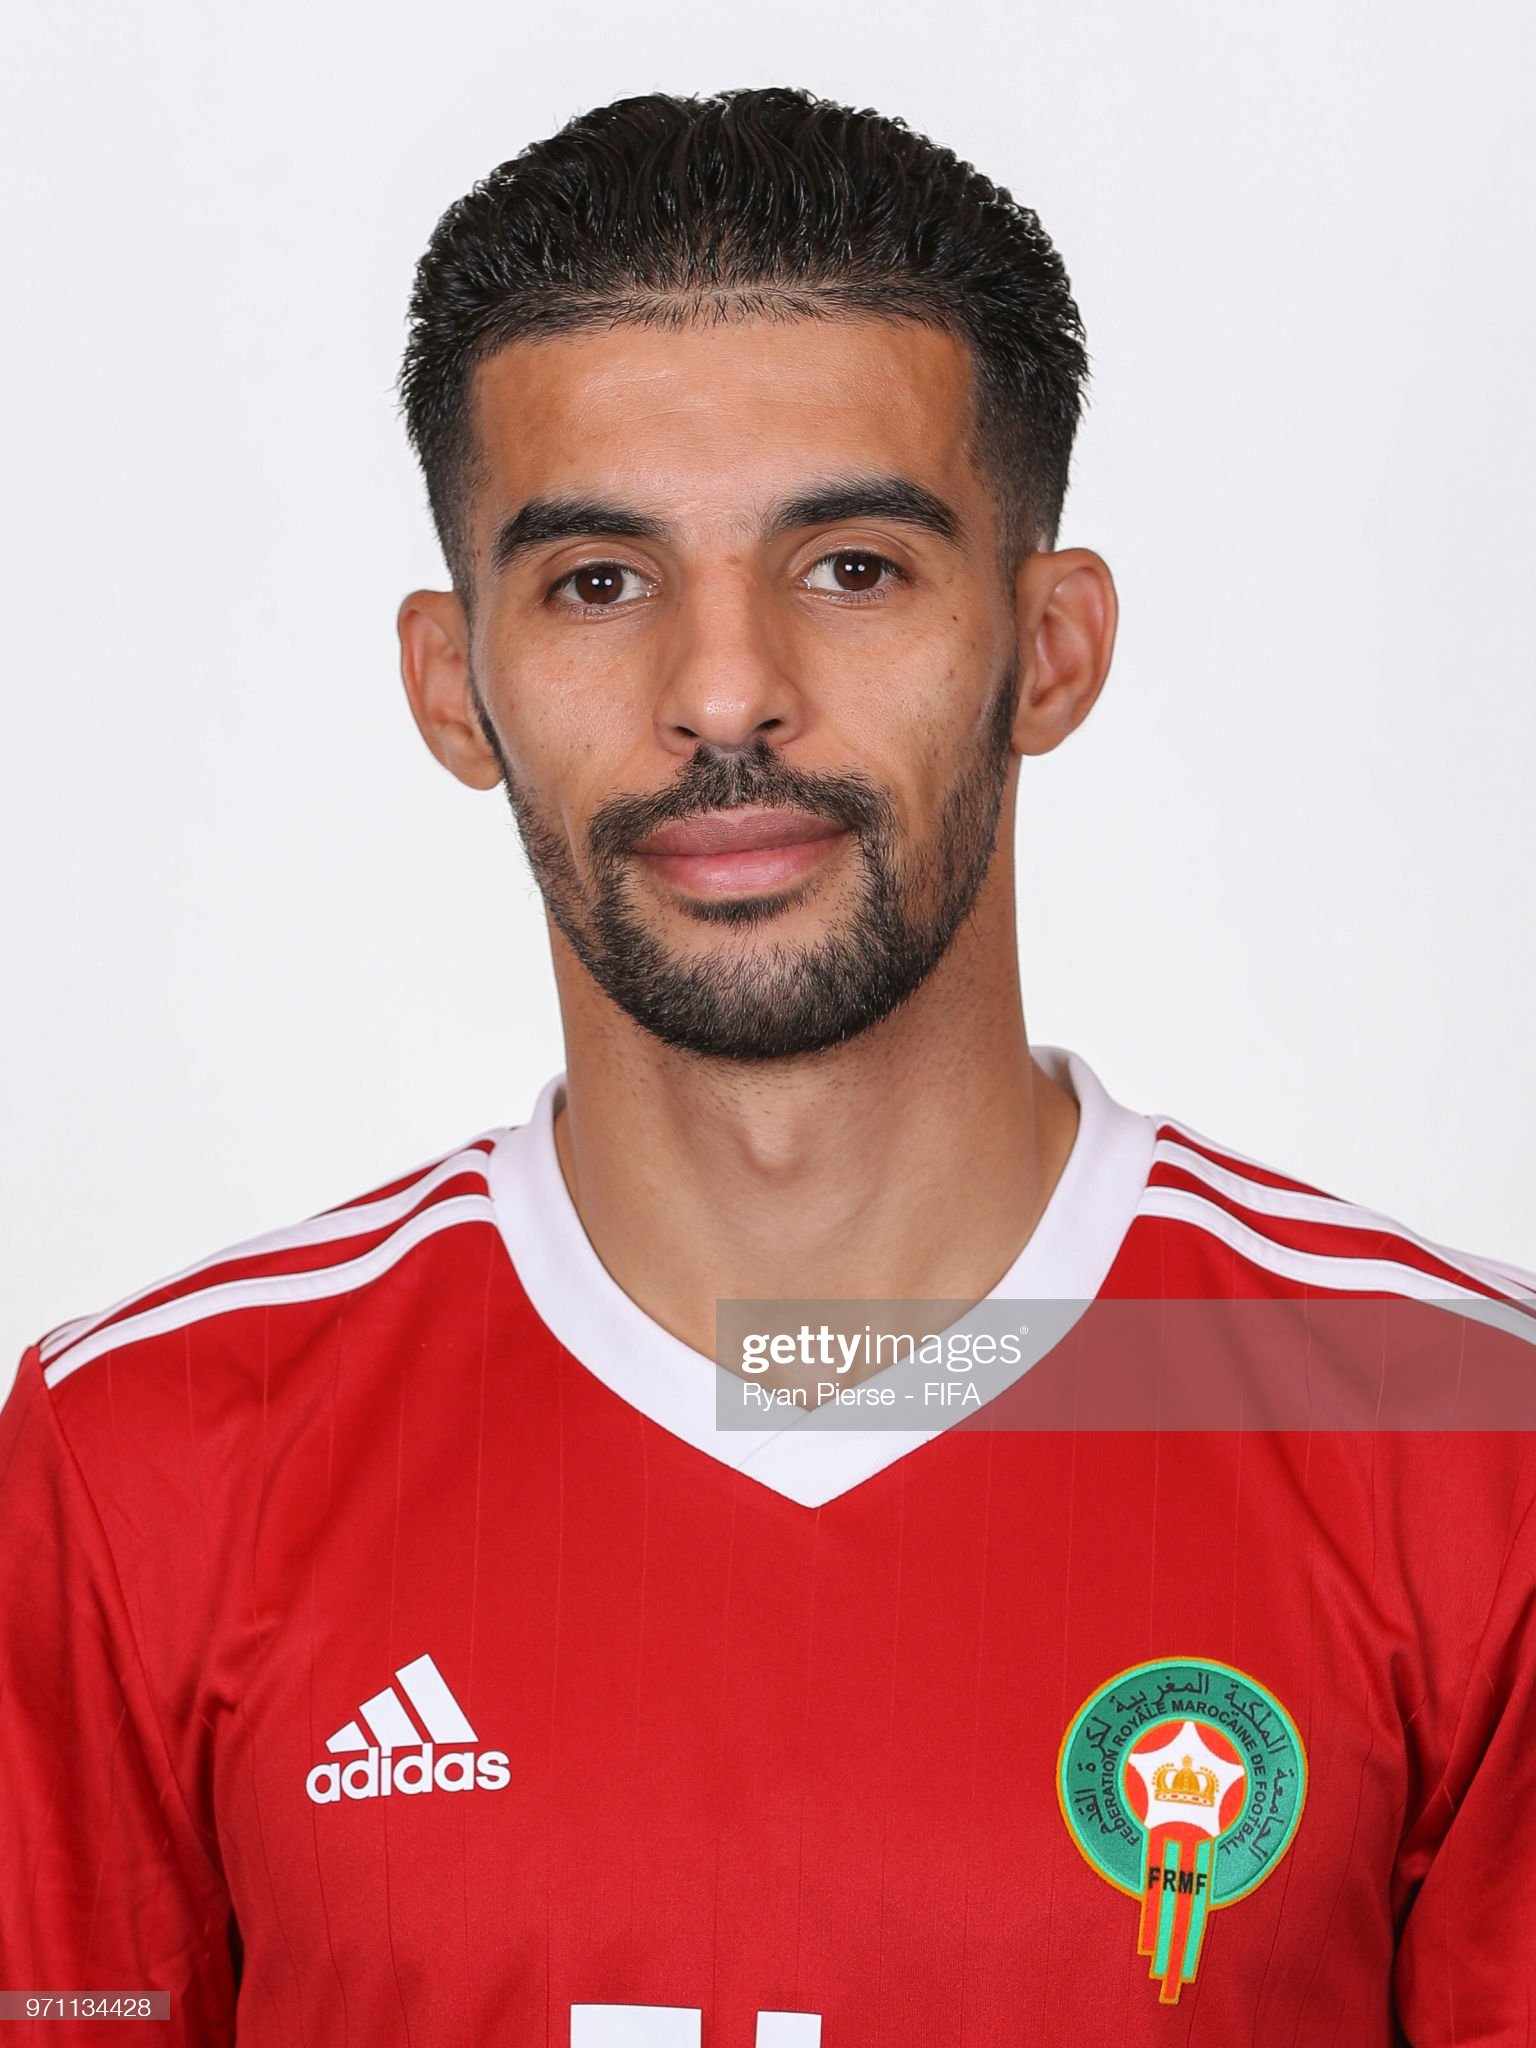 Norteafricanos Mbark-boussoufa-of-morocco-poses-during-the-official-fifa-world-cup-picture-id971134428?s=2048x2048